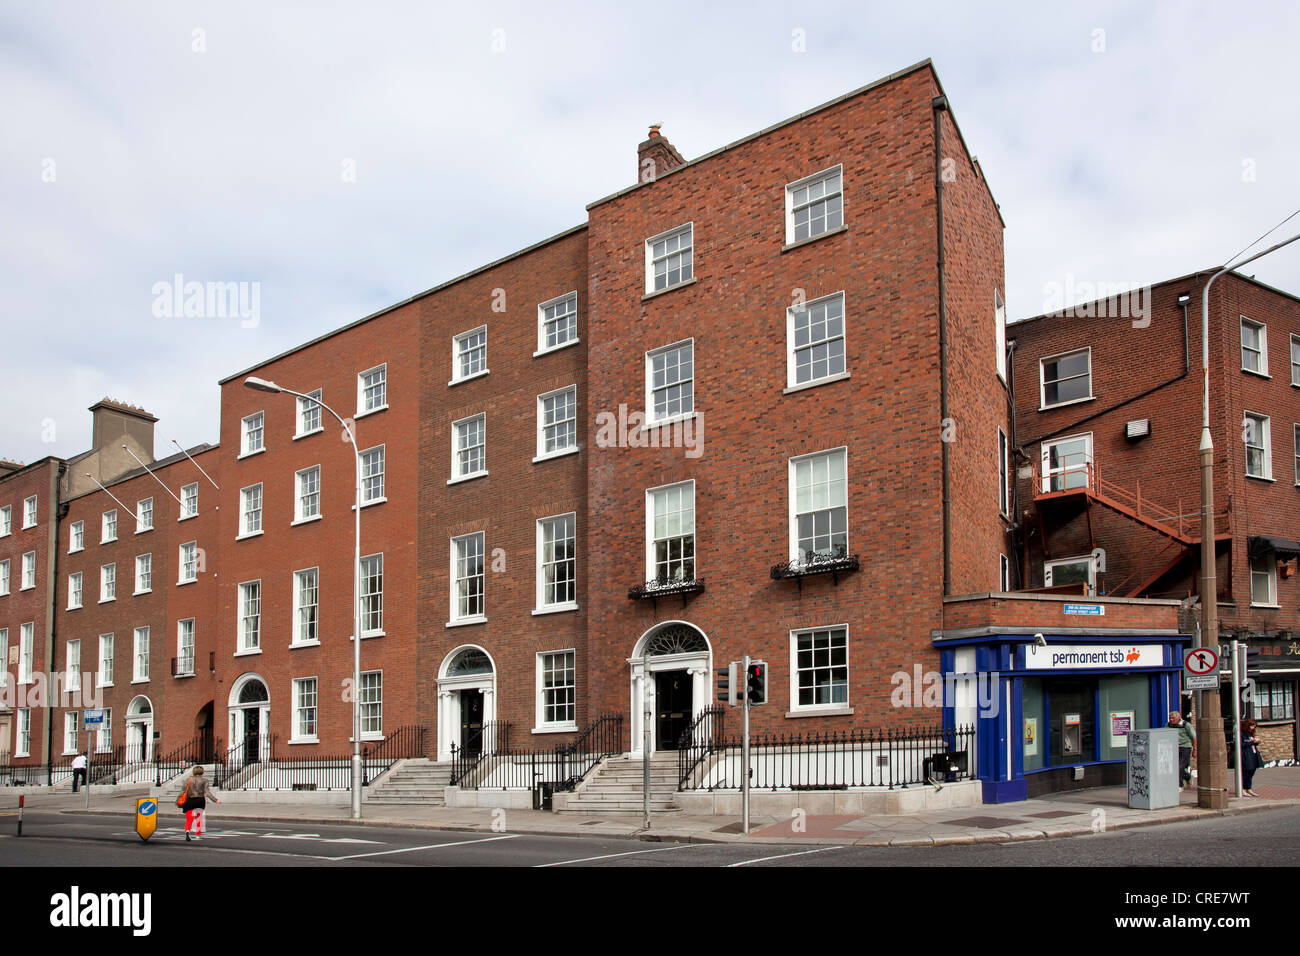 Headquarters of the Permanent TSB bank in Dublin, Ireland, Europe - Stock Image